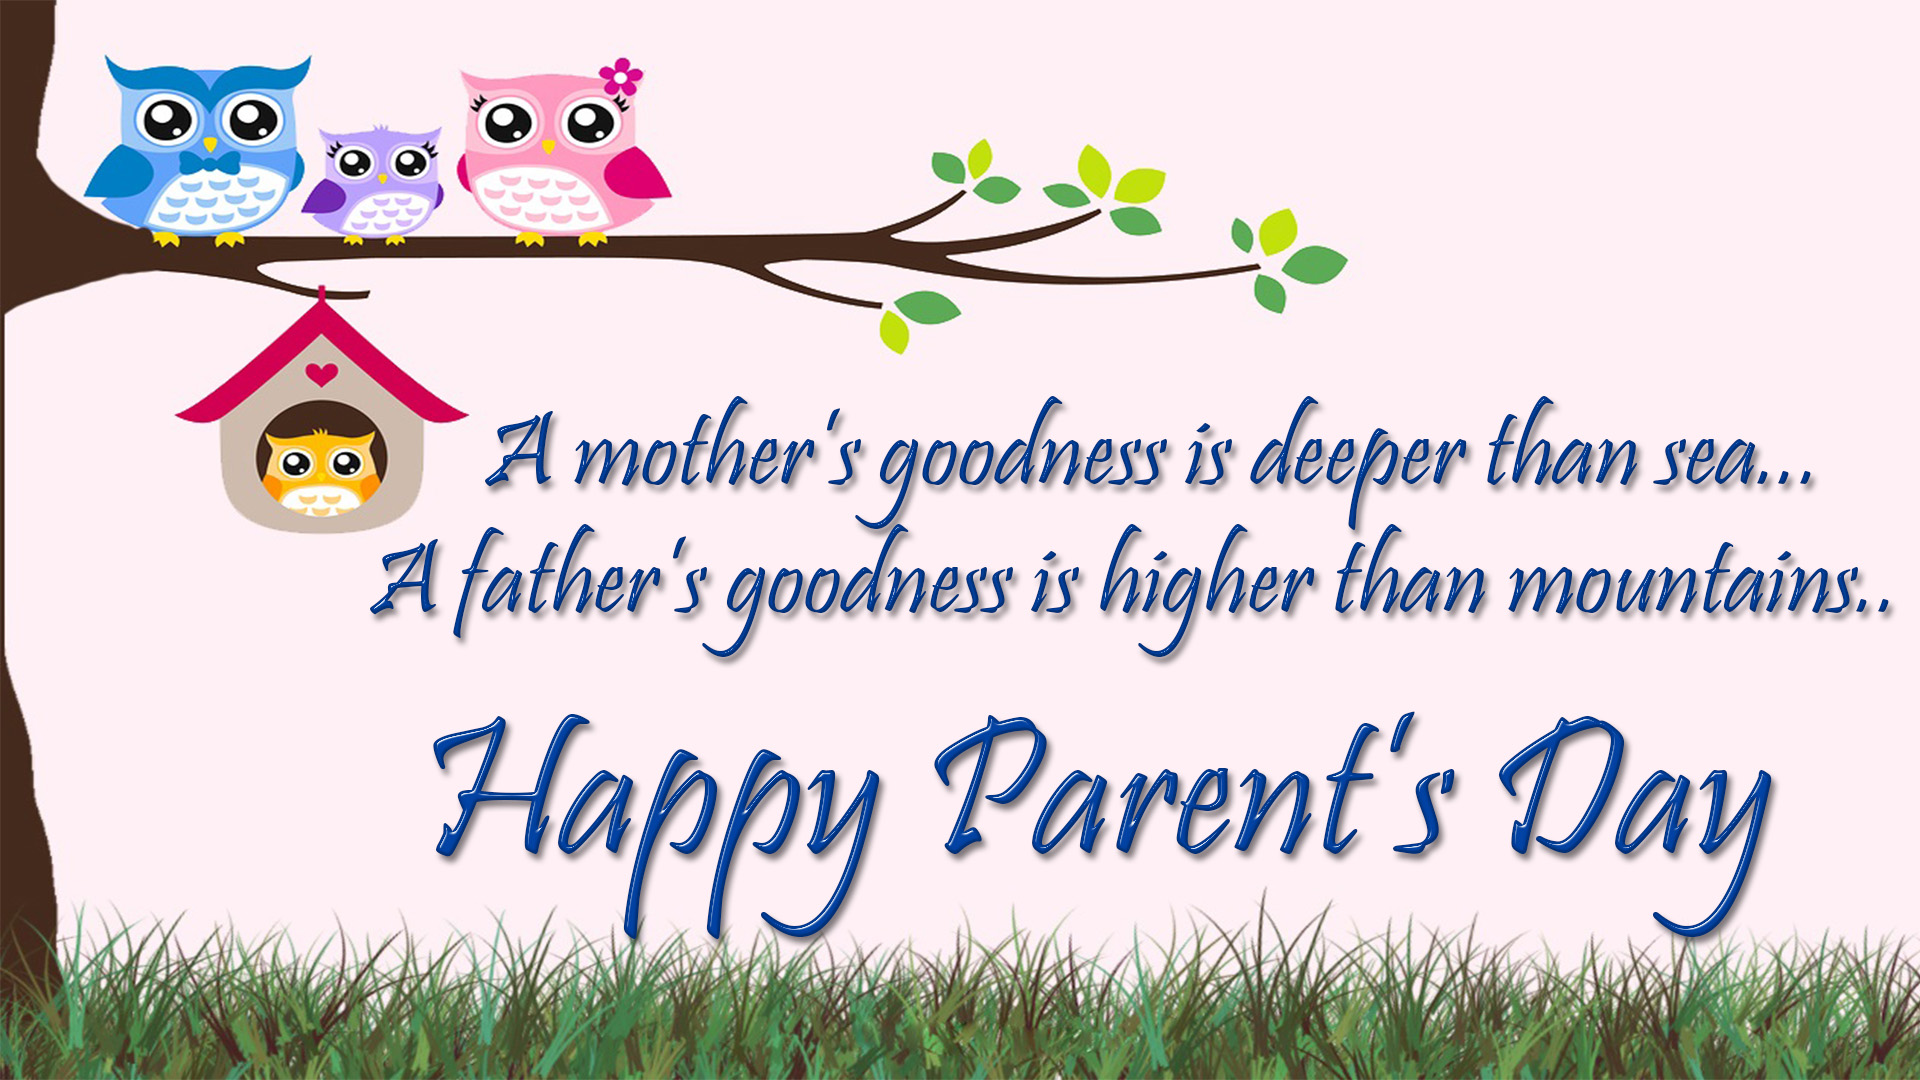 Happy Parents Day Wishes & Quotes Images - Wishes Quotes Images